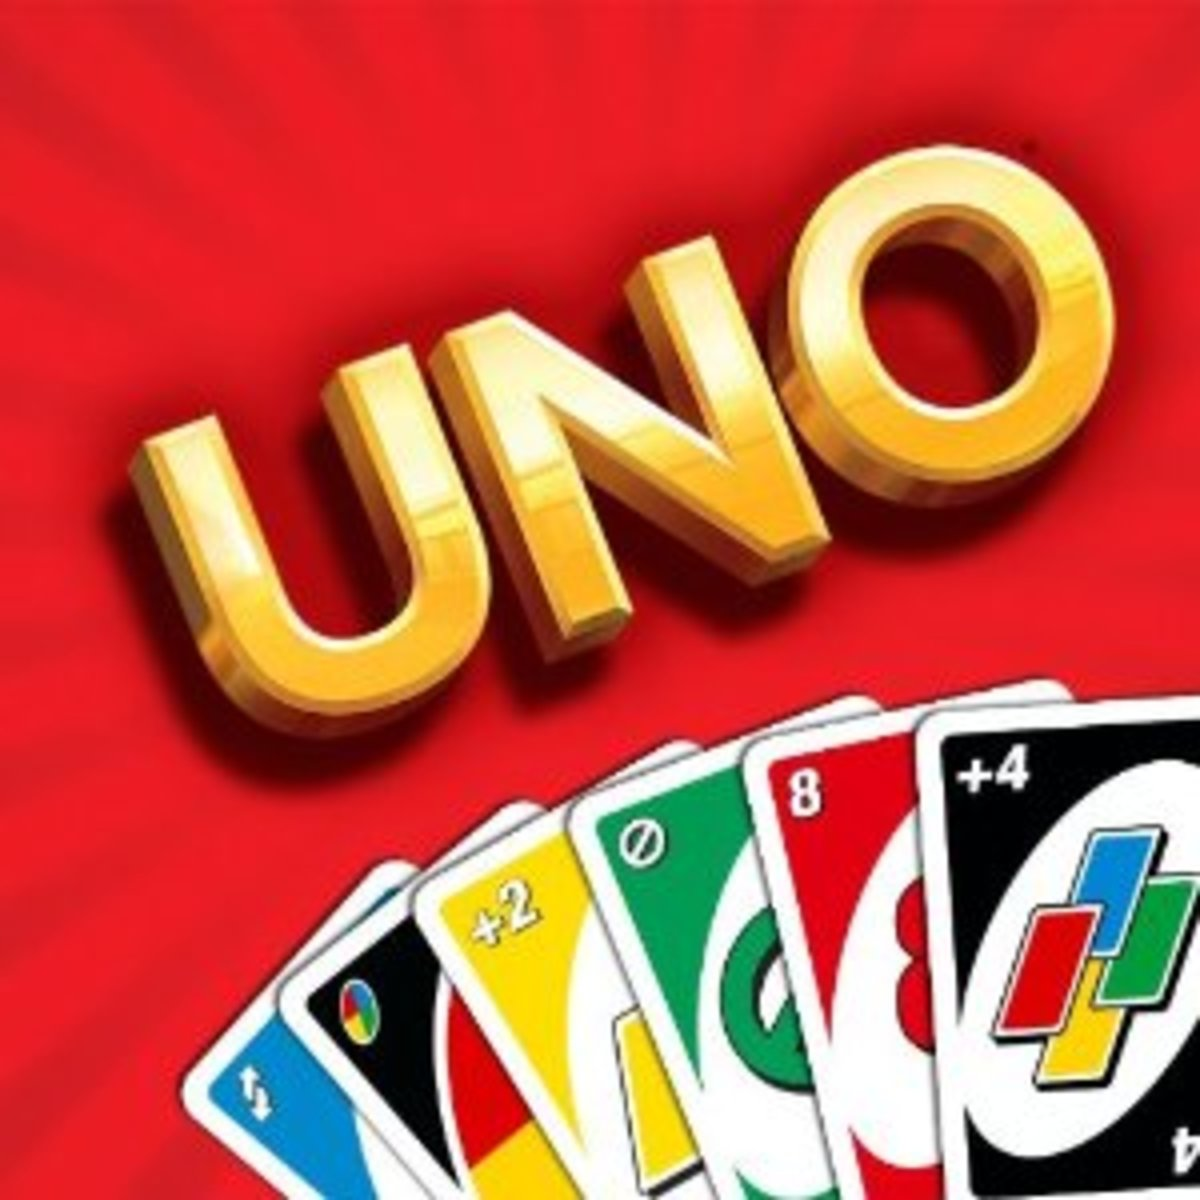 """Stress"" - A Different Way to Play UNO Cards"